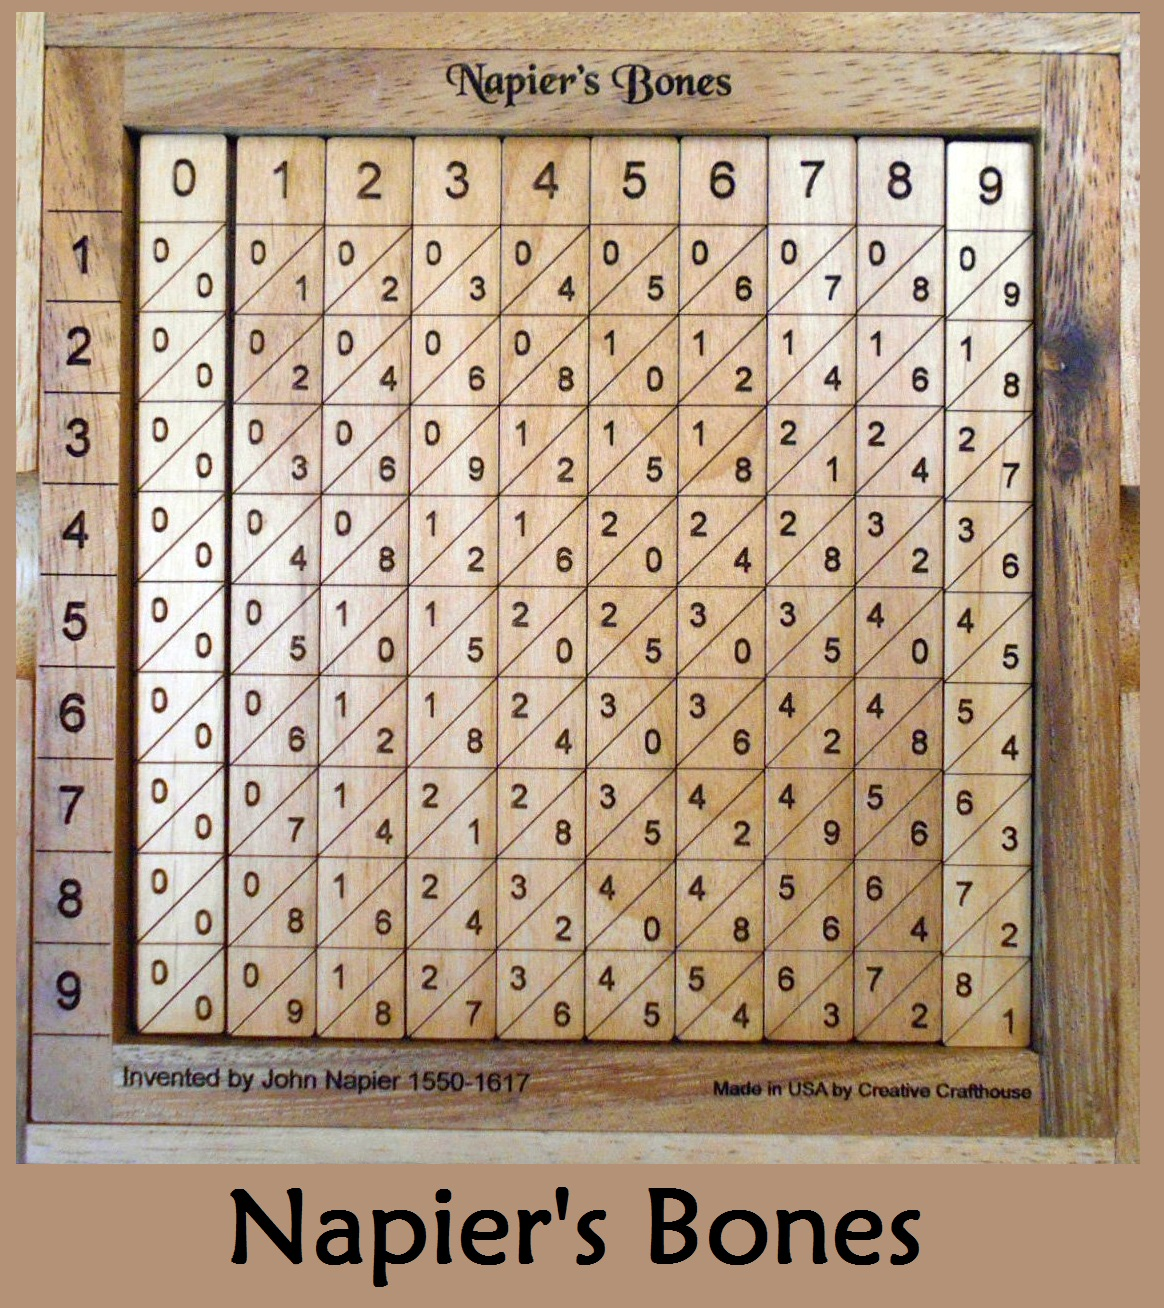 napier s bones Napier's rods became quite popular and we used in britain and on the continent the rabdologia was translated into italian and dutch, and the original latin text was republished in leiden we have used the name 'napier's rods' in this article, but often the calculating aid was called 'napier's bones'.